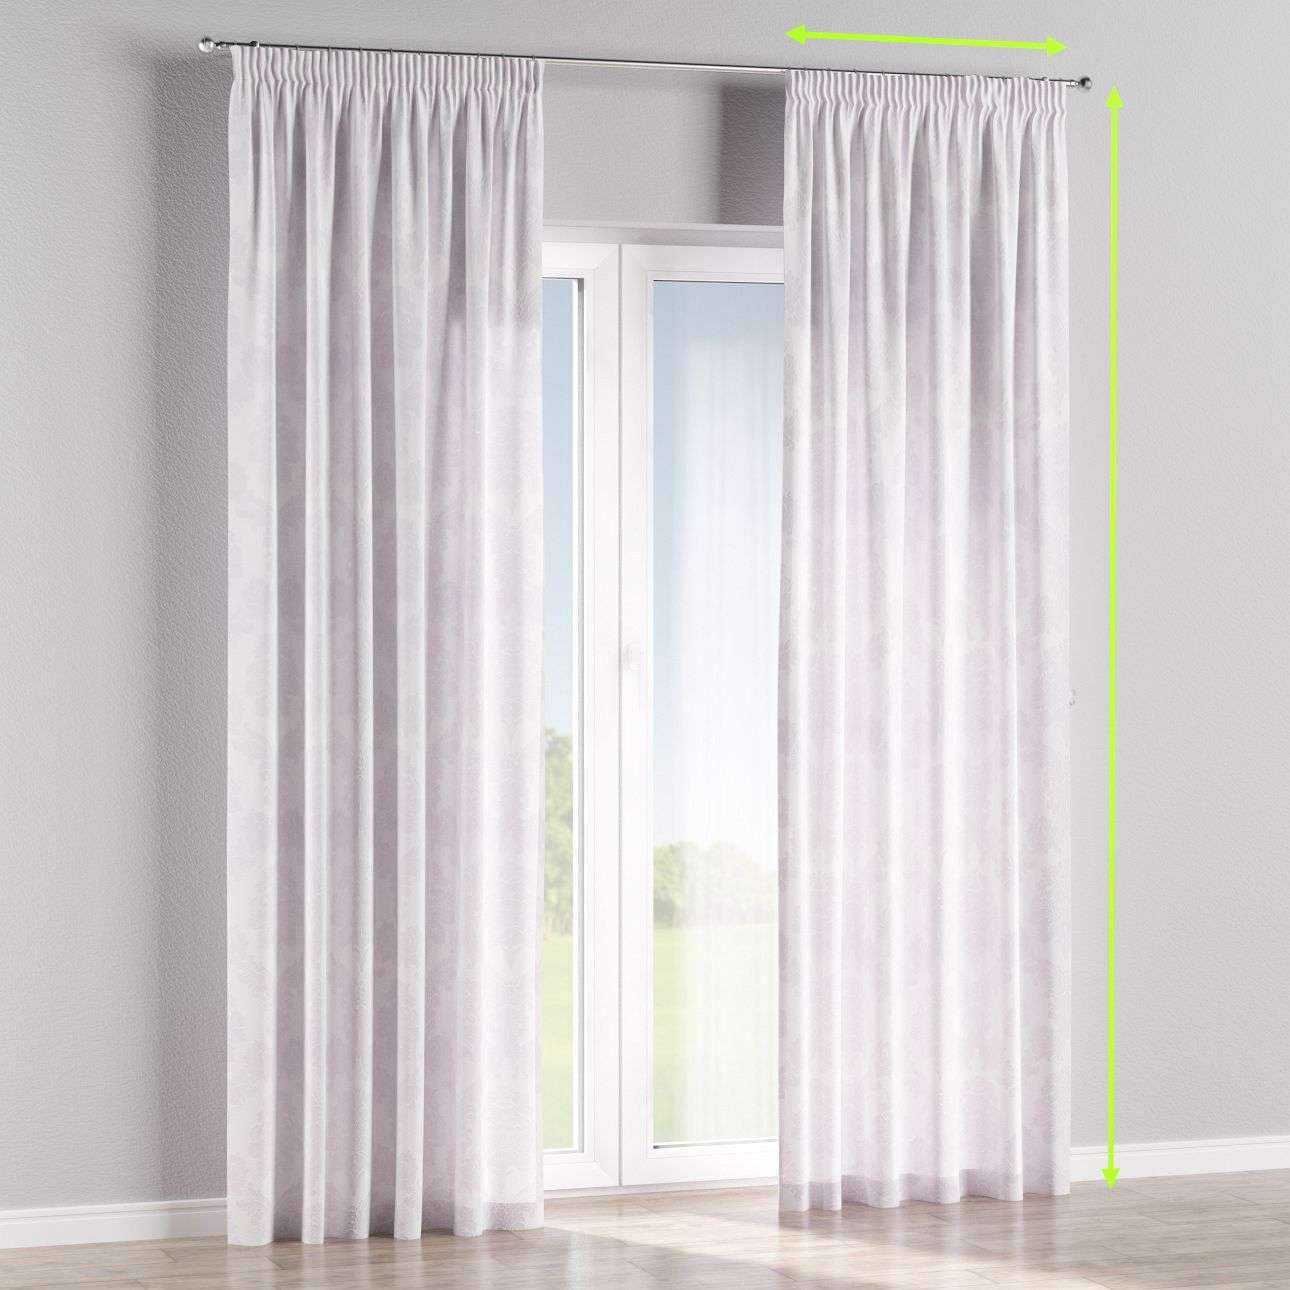 Pencil pleat curtains in collection Damasco, fabric: 613-00